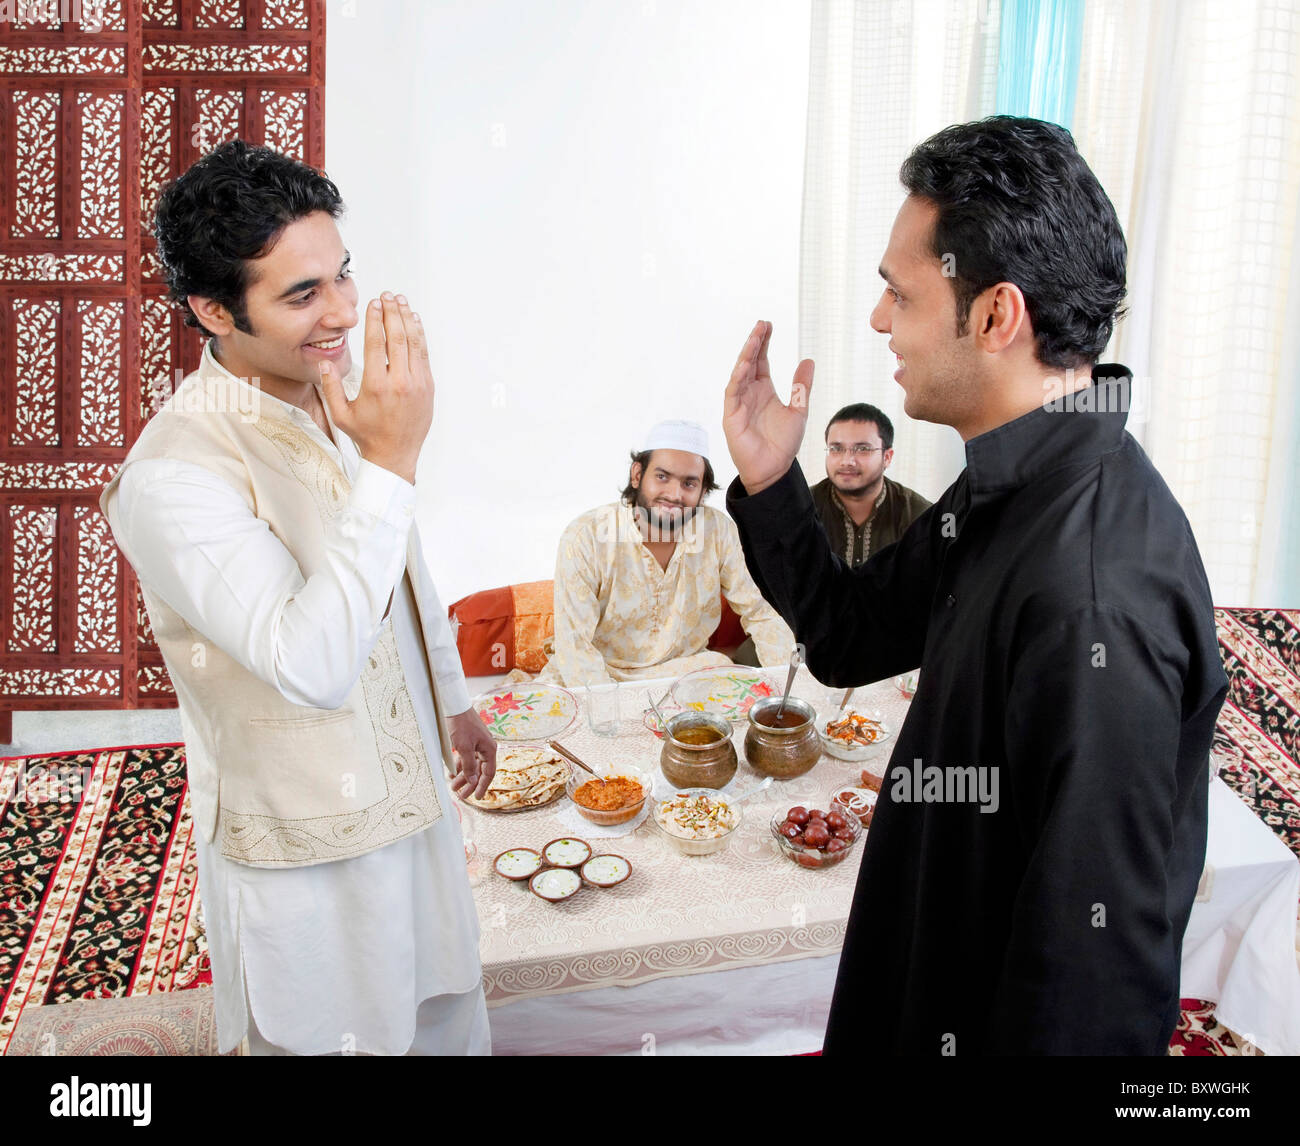 Muslim men greeting each other stock photo 33753263 alamy muslim men greeting each other m4hsunfo